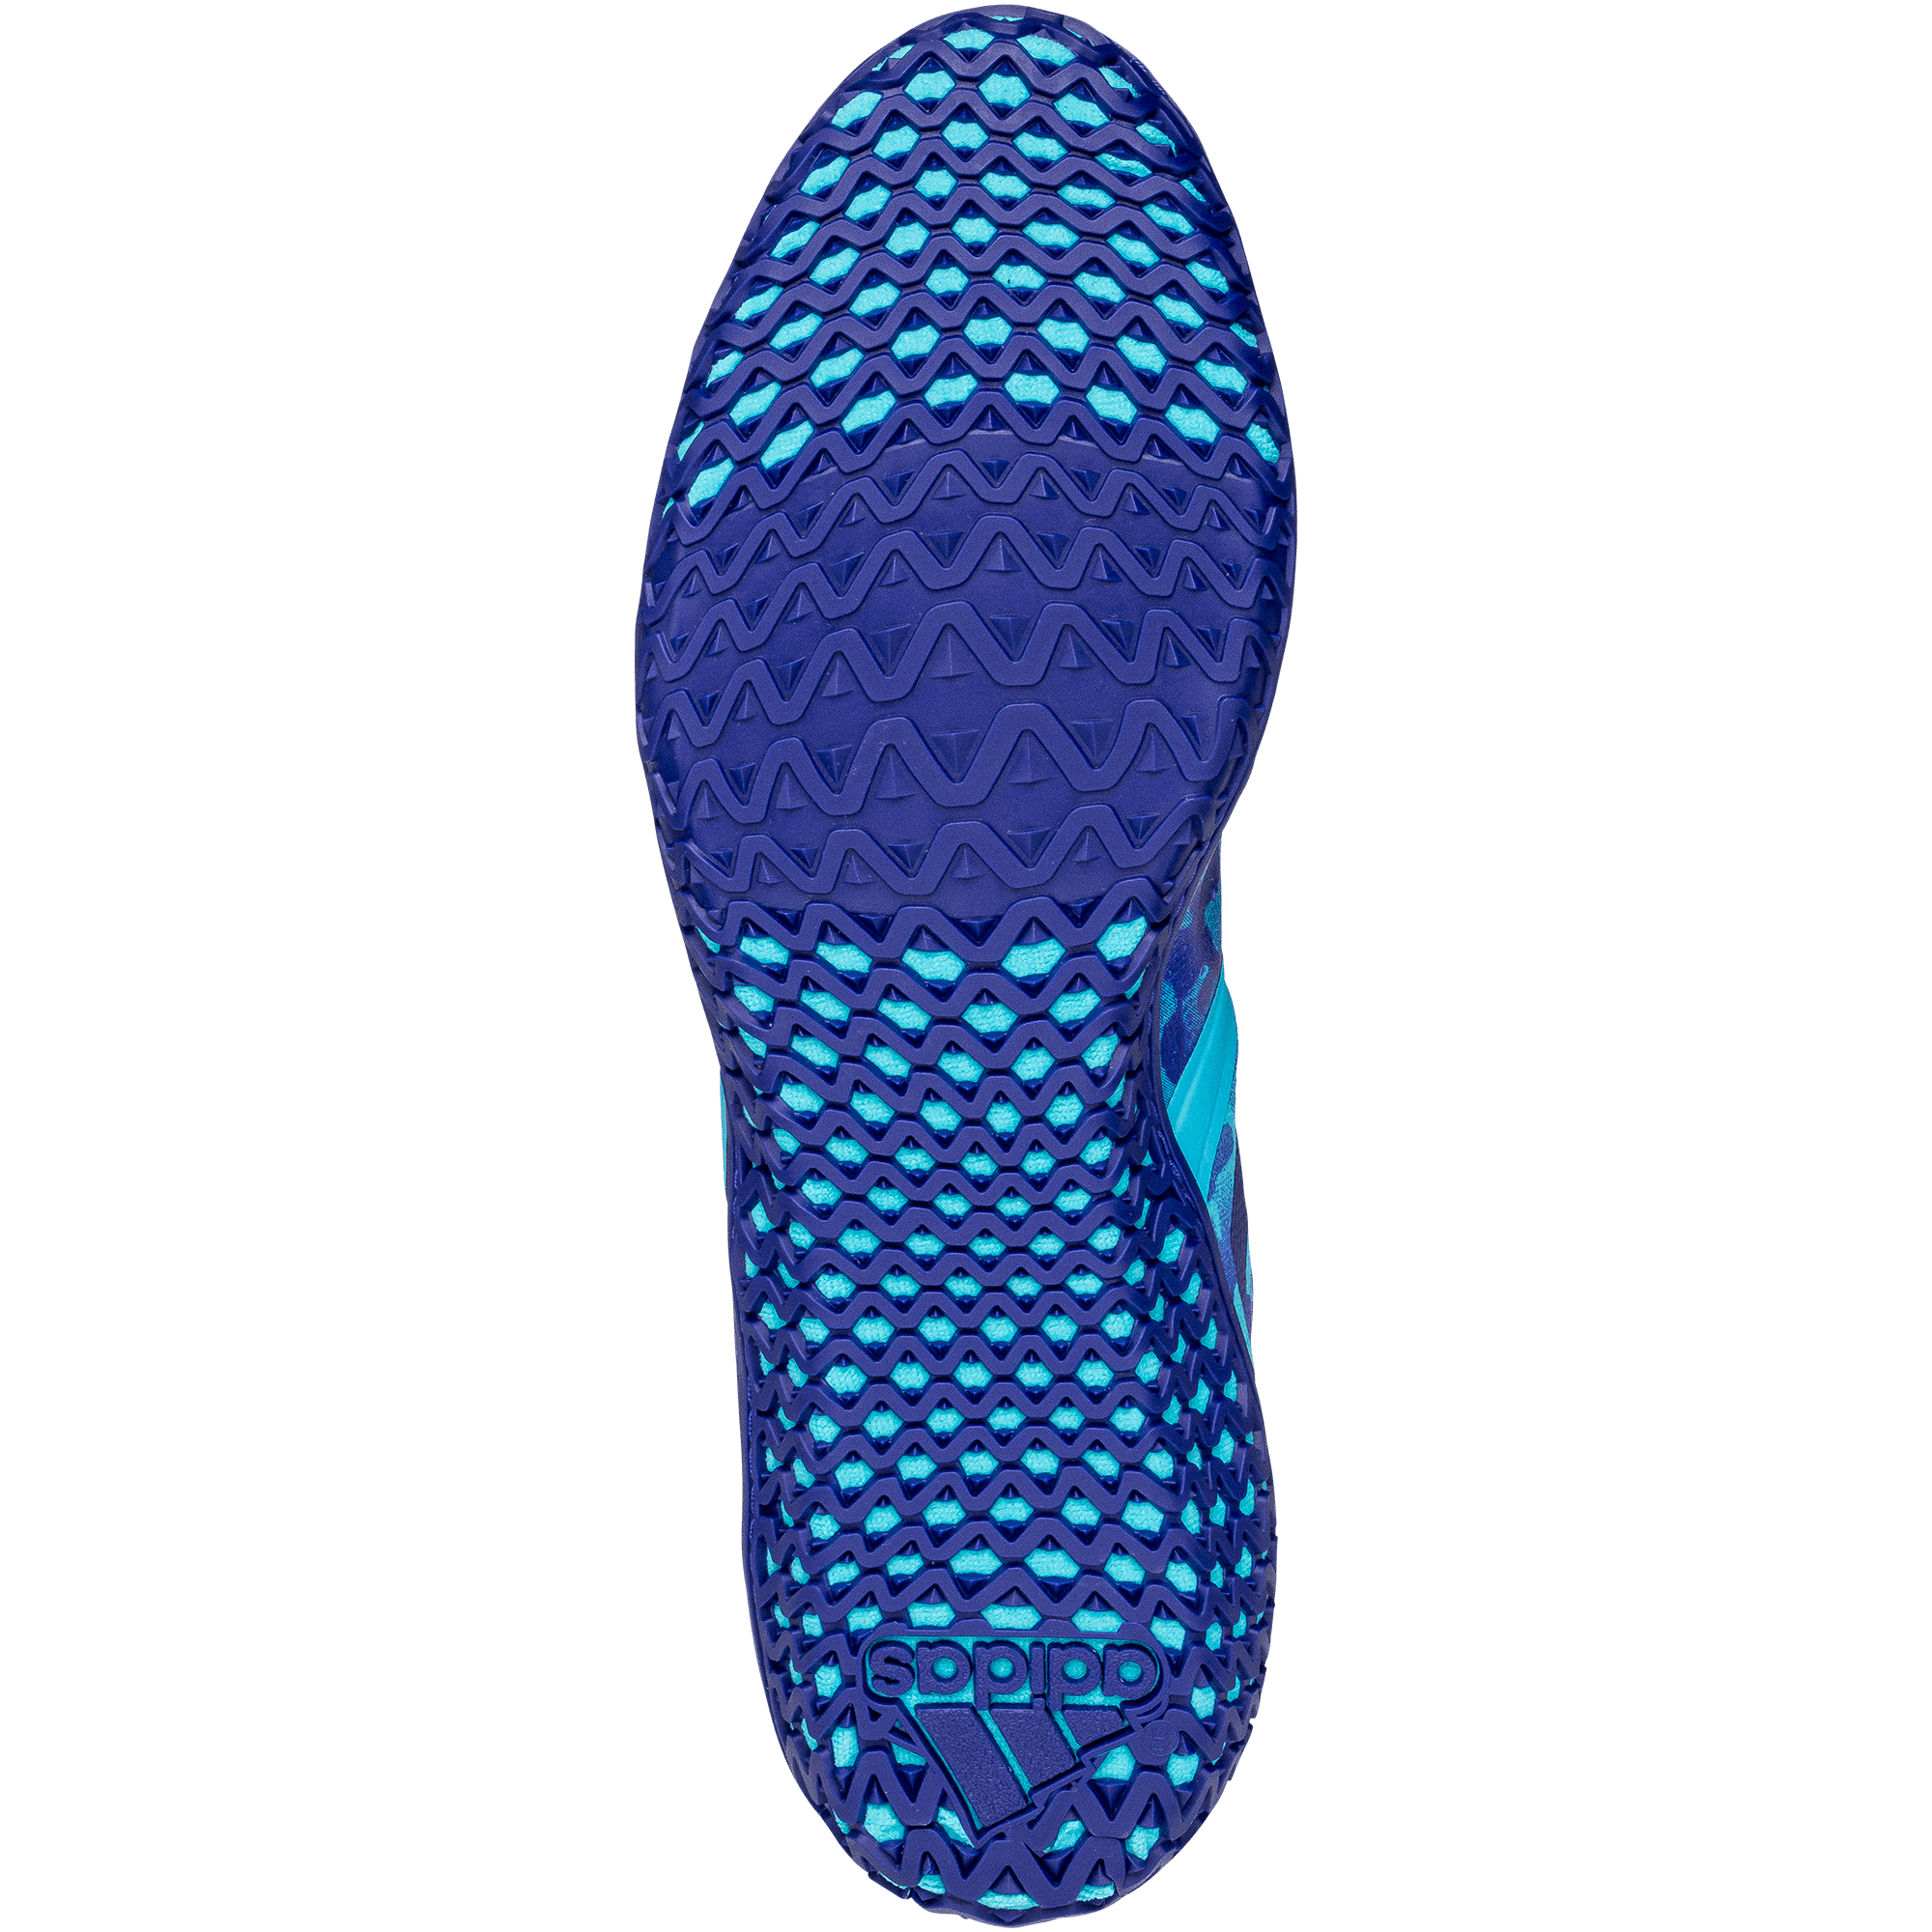 Adidas shoe sole pattern png. Impact shoes wrestlingmart free